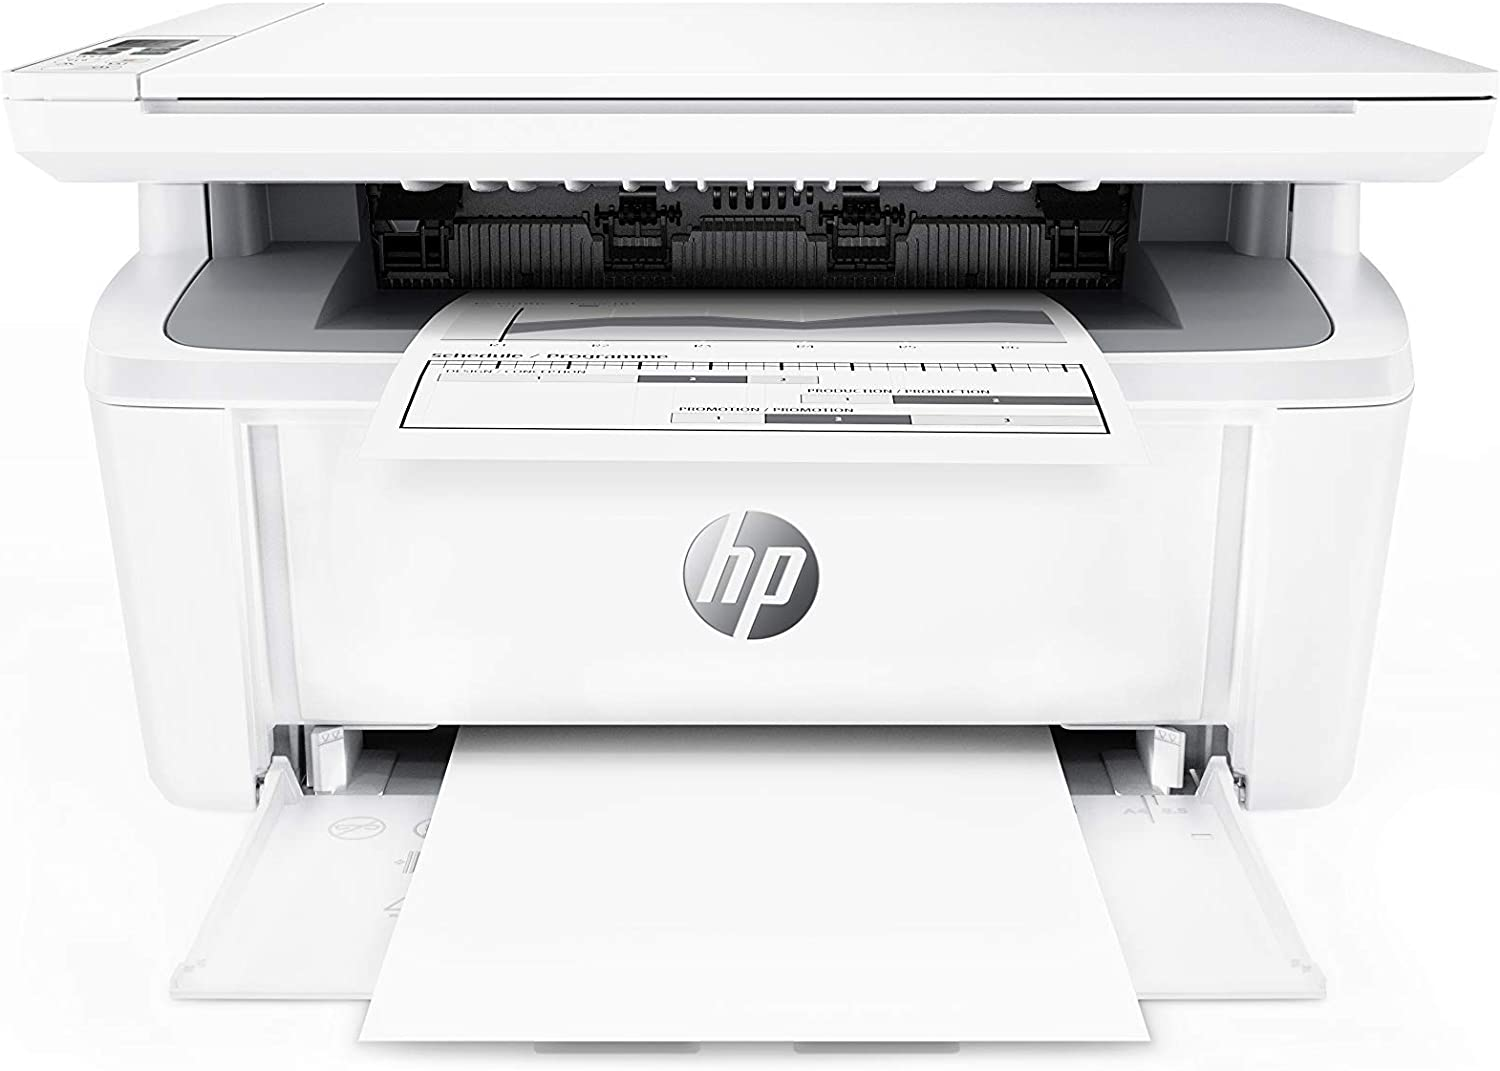 HP Laserjet Pro M31w All-in-One Wireless Monochrome Laser Printer with Mobile Printing (Y5S55A) (Renewed)